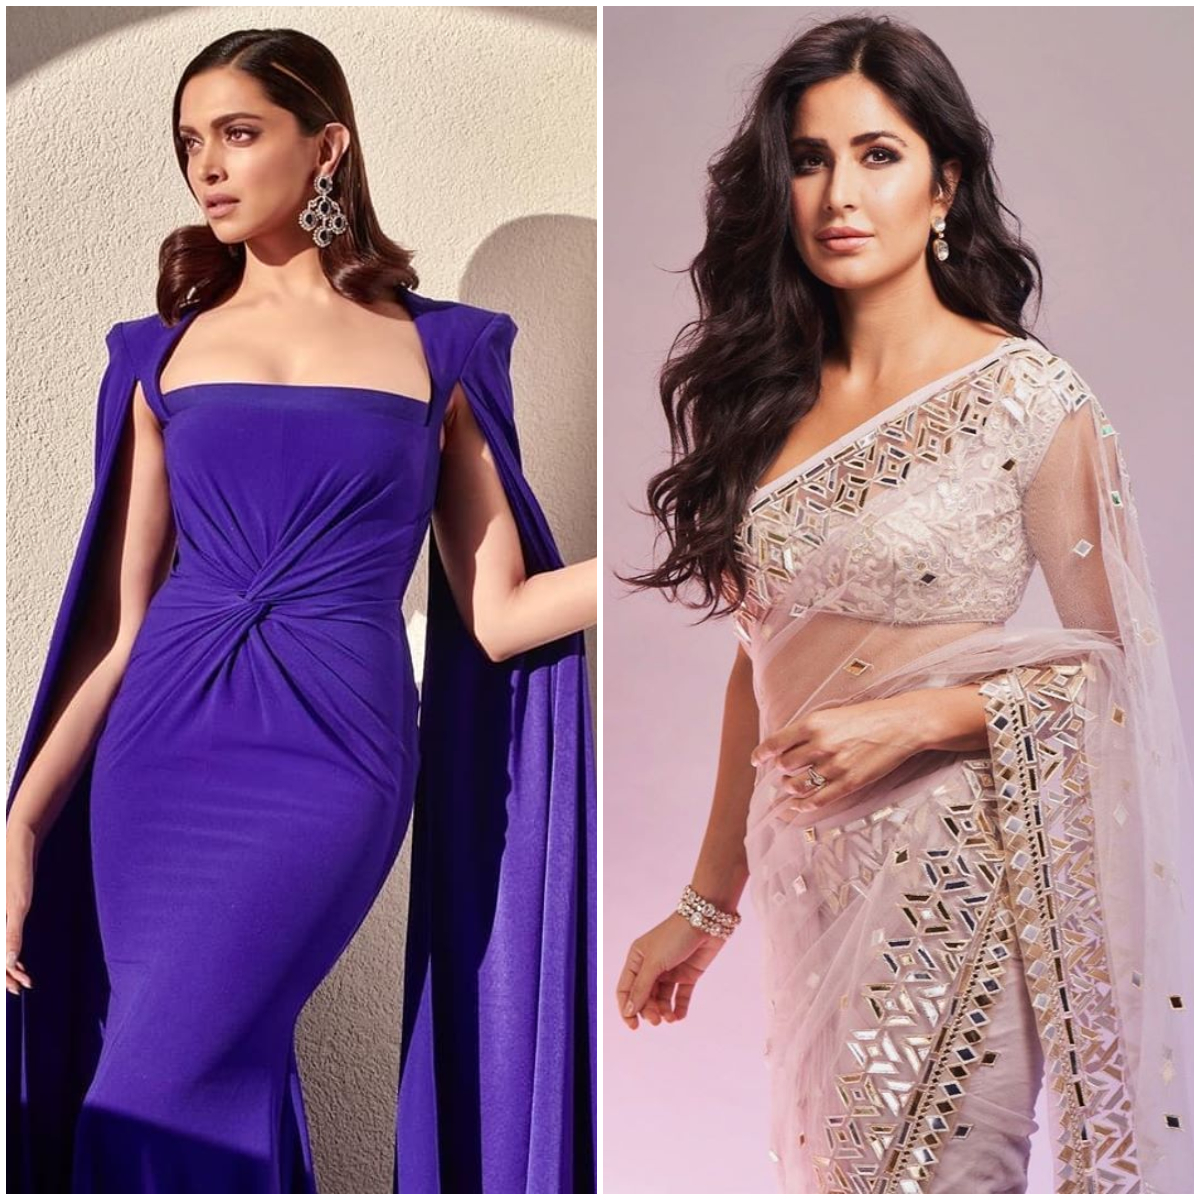 From Deepika Padukone to Katrina Kaif Who was the best dressed celebrity of the week?